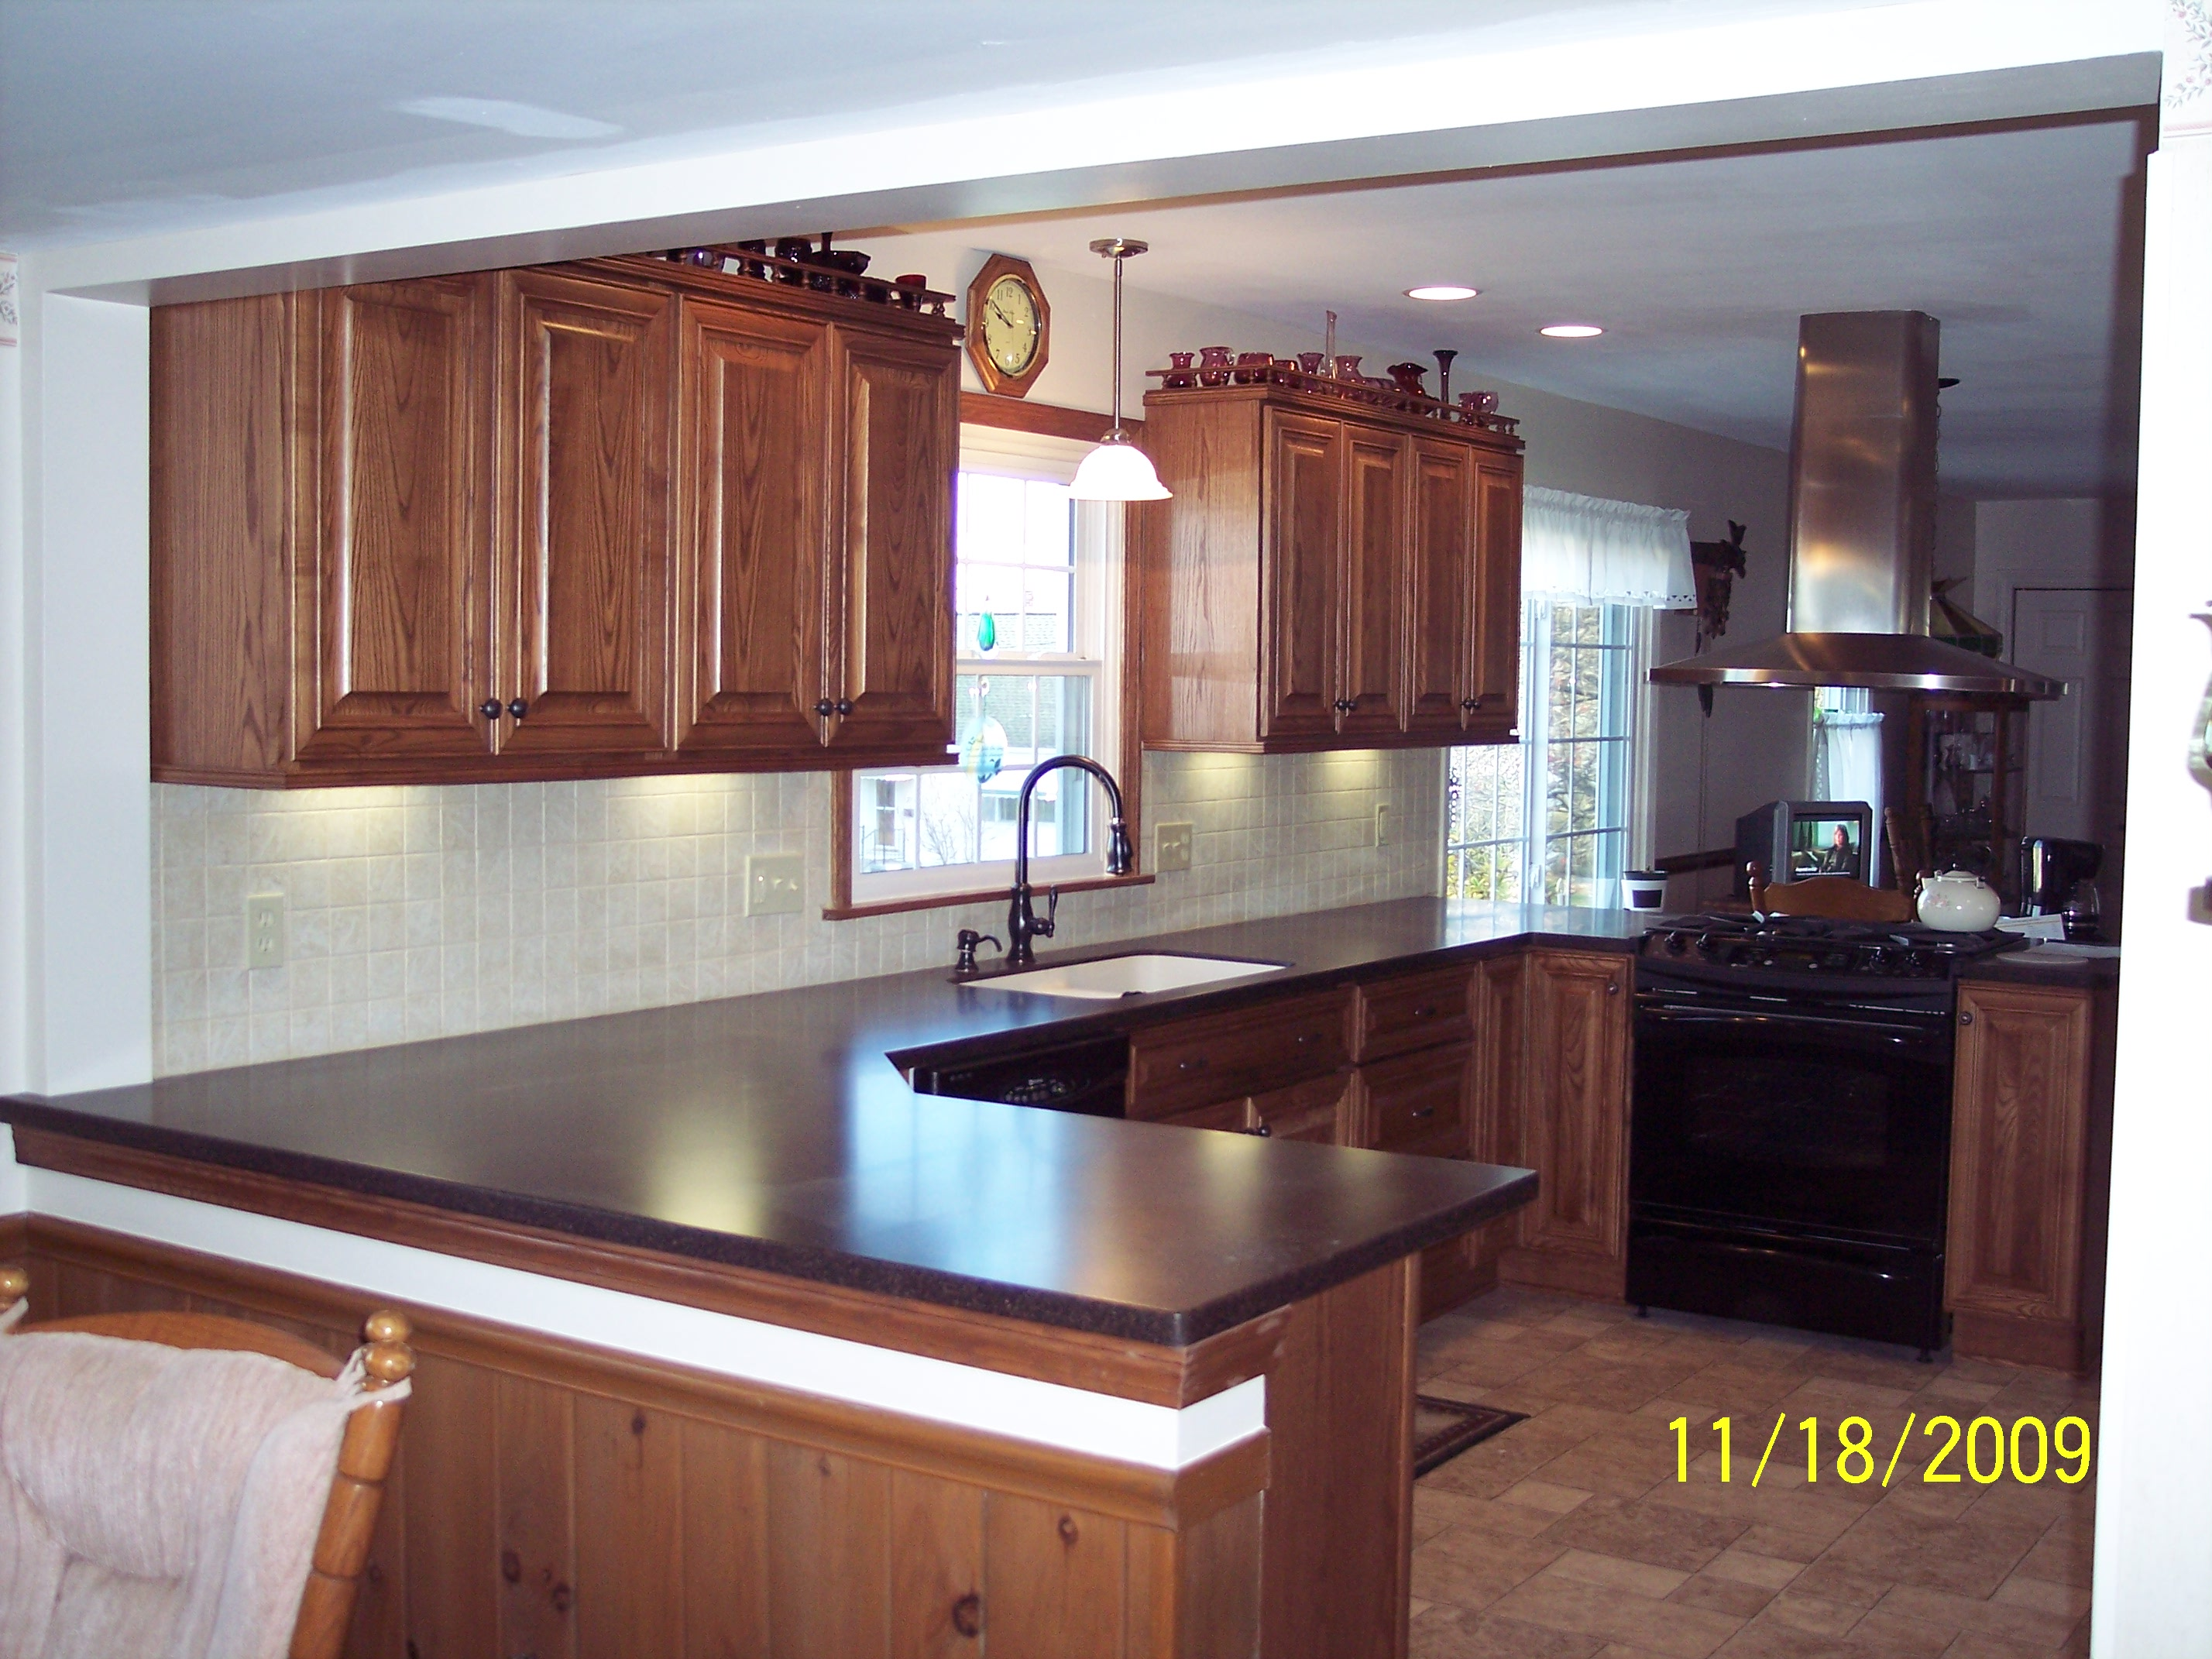 Bathroom Remodeling Erie Pa kitchen remodeling contractor in erie, pa - corsi remodelingcorsi